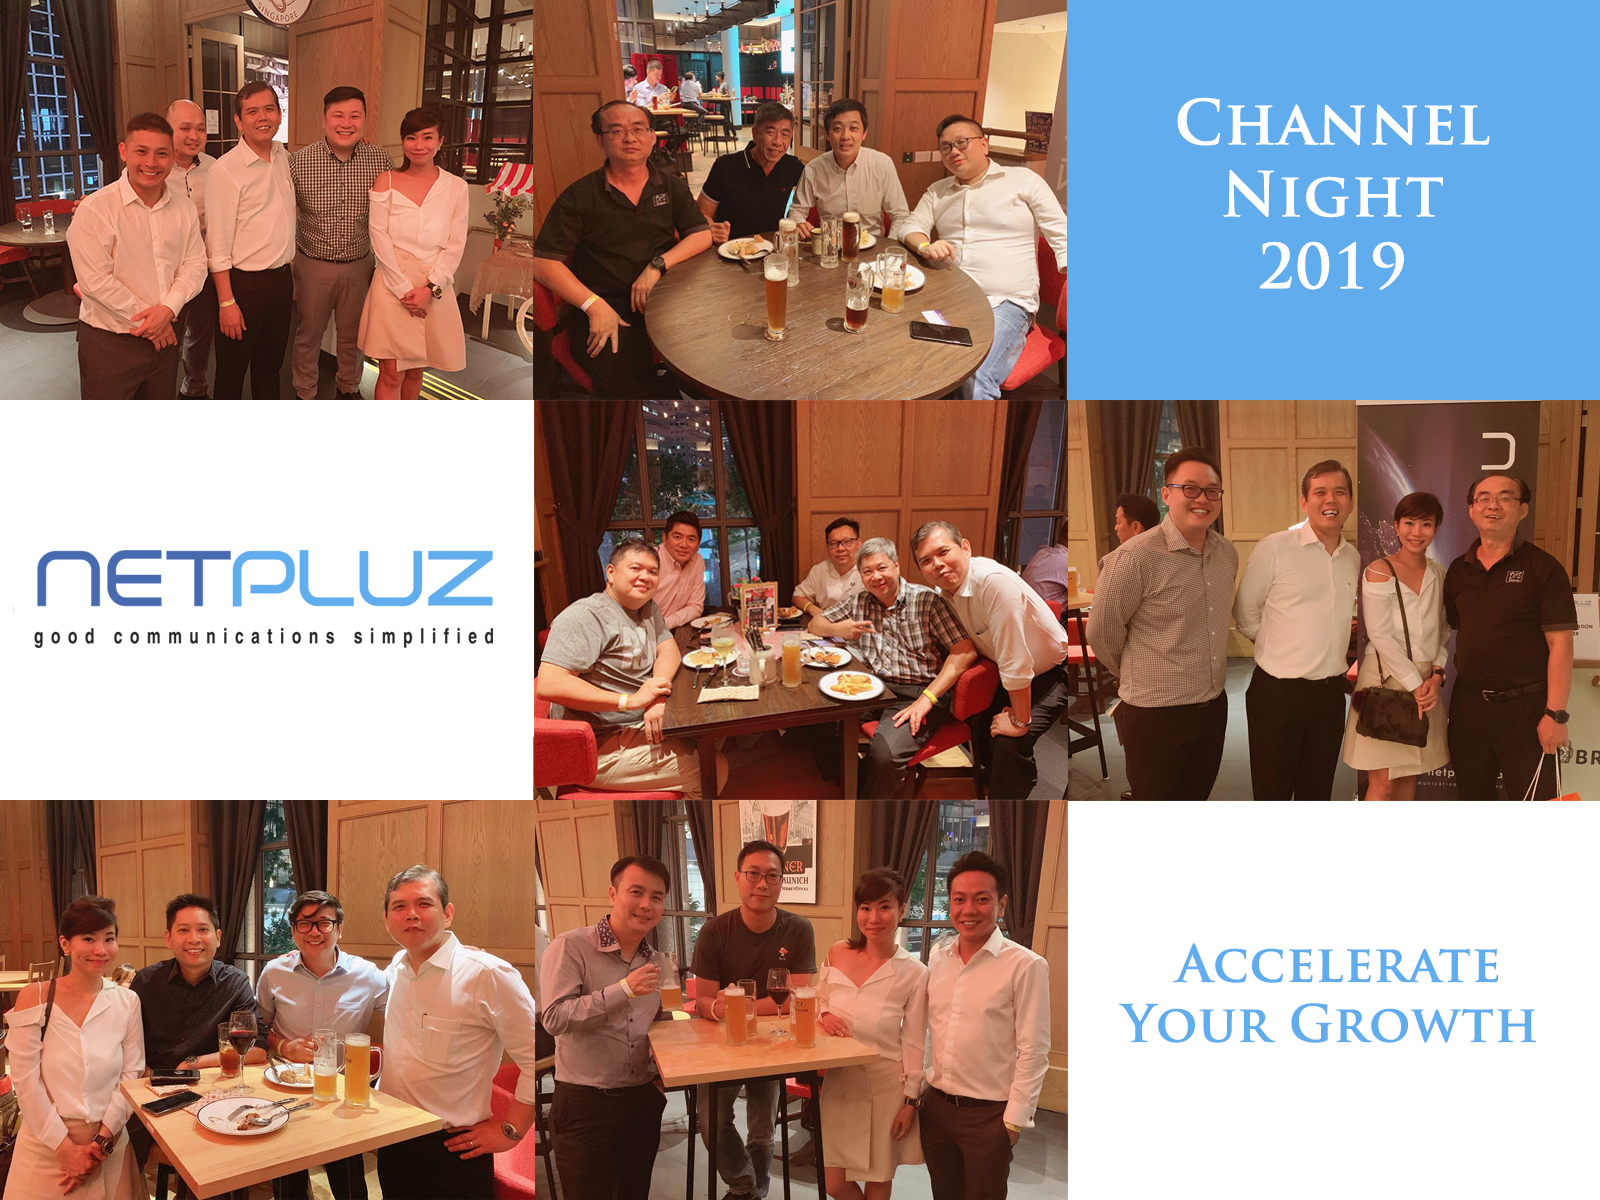 Channel Night 2019: Accelerate Your Growth!